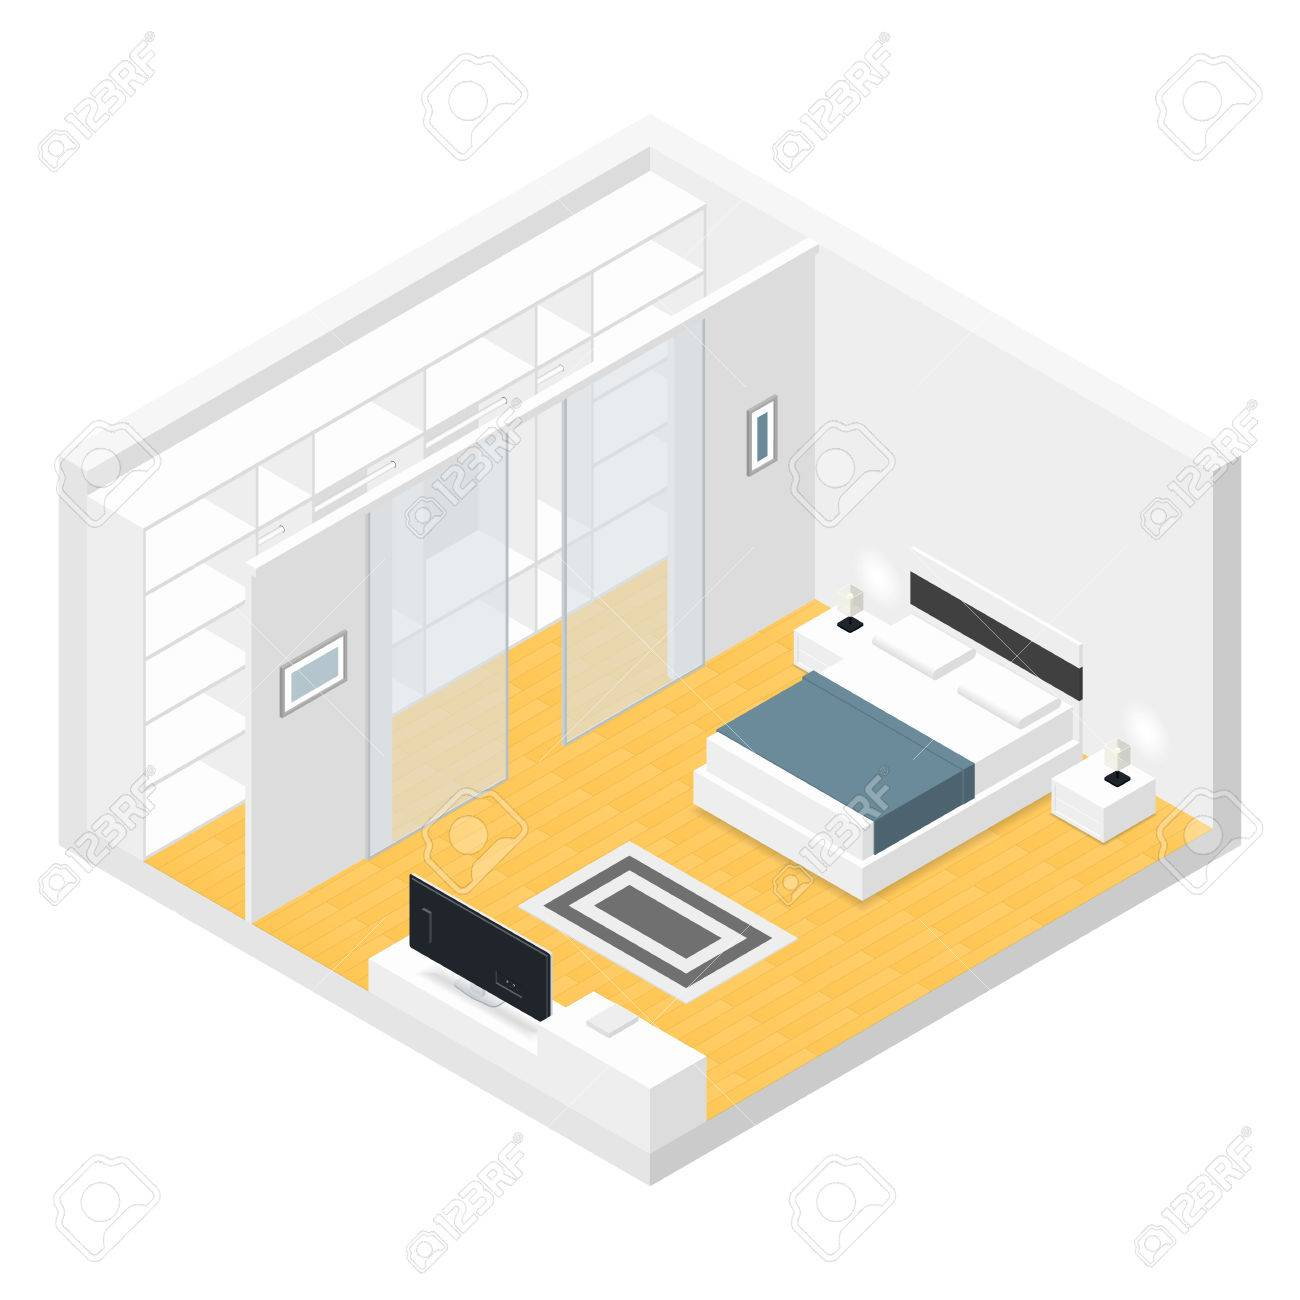 Graphy Bedroom Bedroom Isometric Set Vector Graphic Illustration Design Royalty